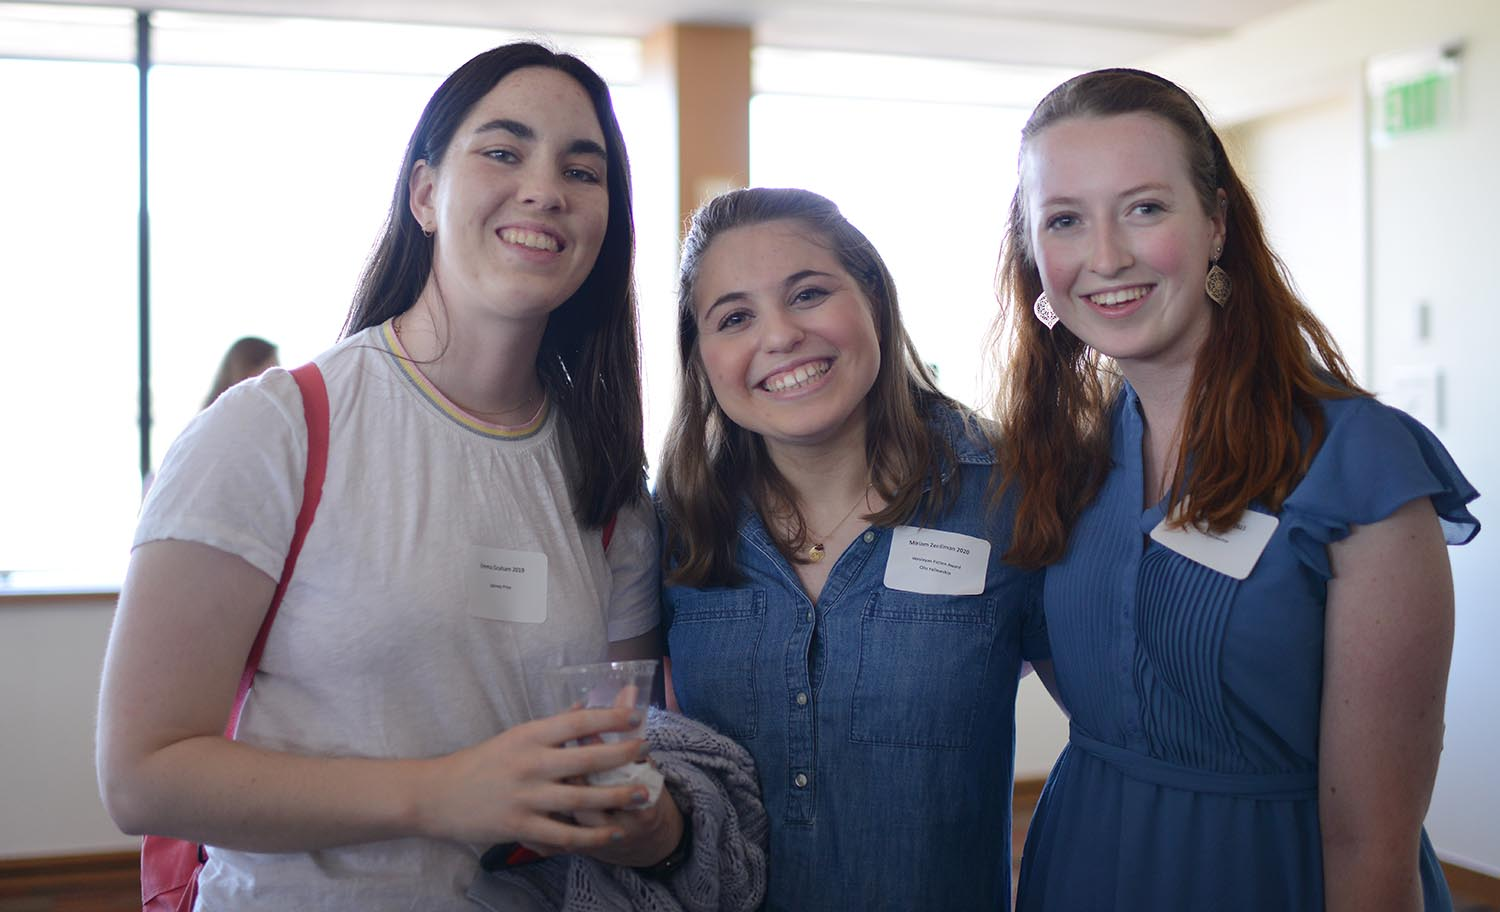 Emma Graham '19 received the Spinney Prize for excellence in Greek. Miriam Zenilman '20 won an Olin Fellowship and the Wesleyan Fiction Award. Sara McCrea '21 won an Olin Fellowship.